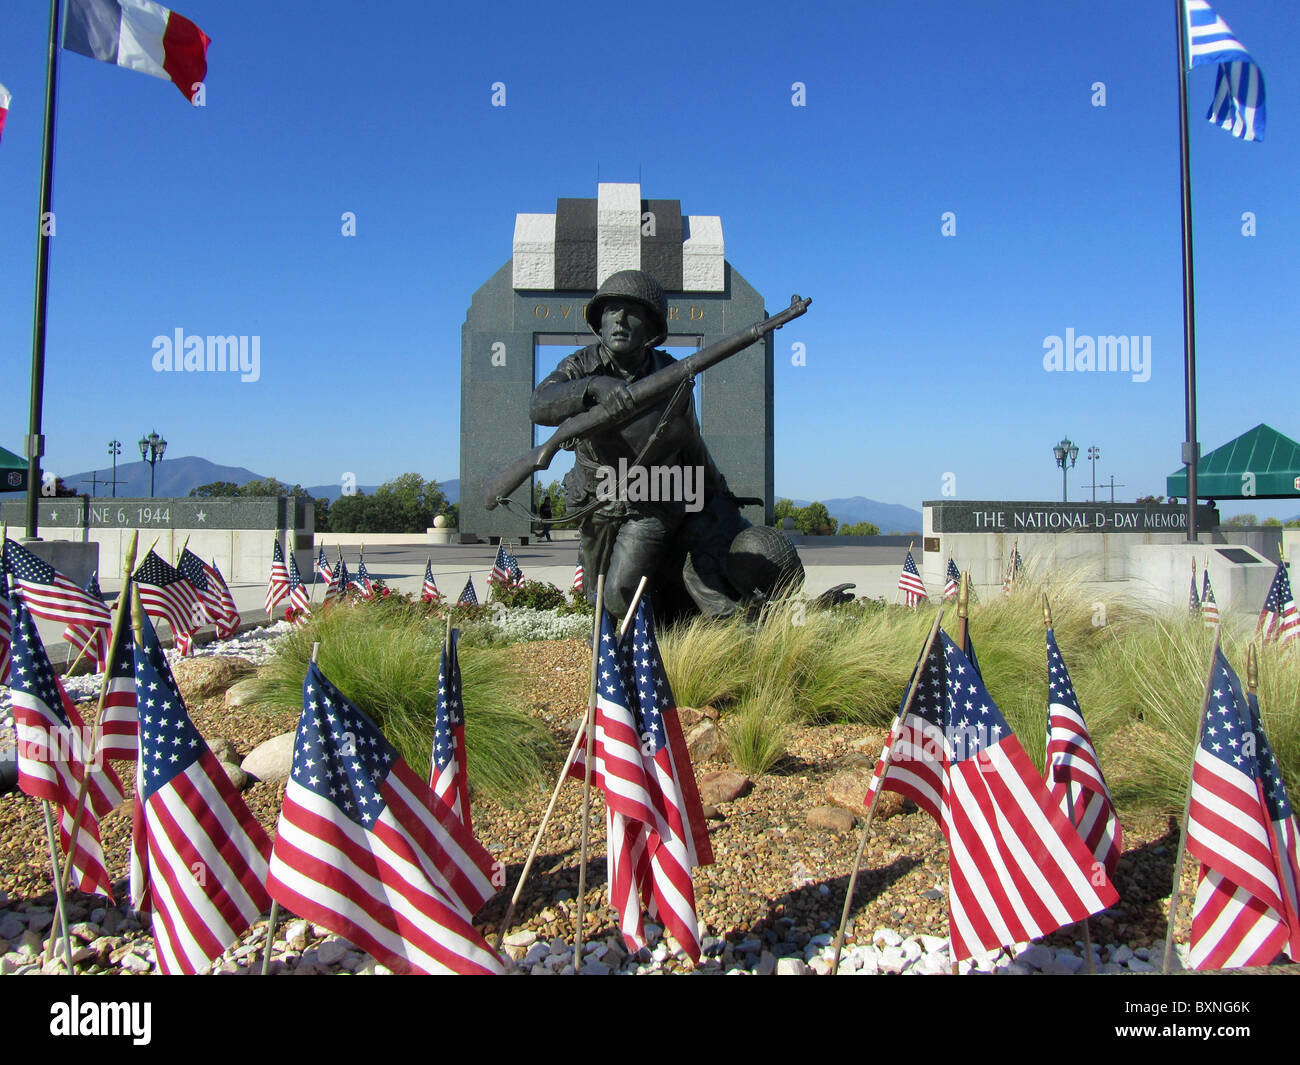 National D-Day memorial, Bedford, Virginia. USA, Stock Photo